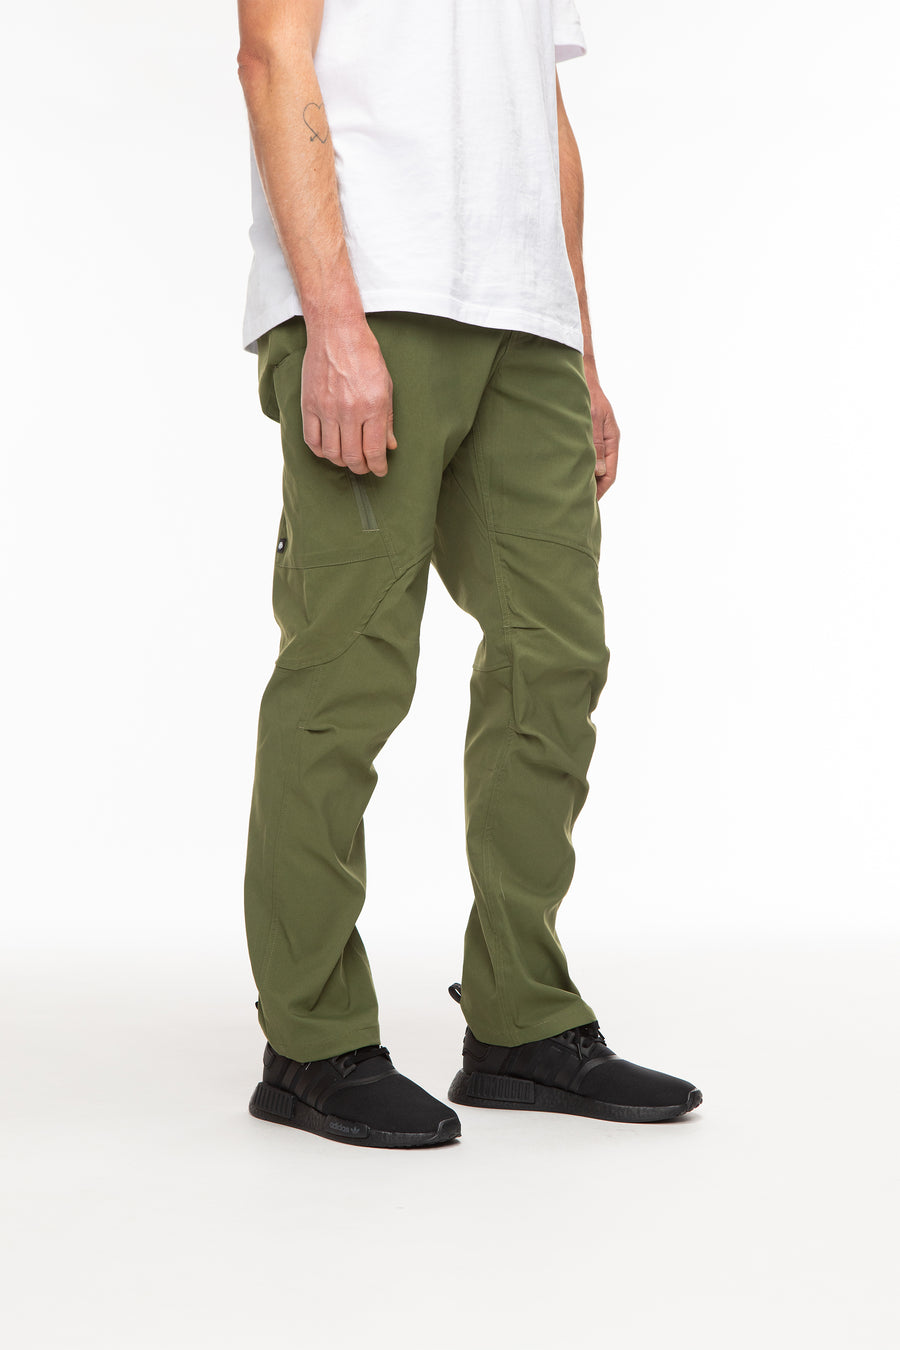 686 Anything Cargo Pant Surplus Green